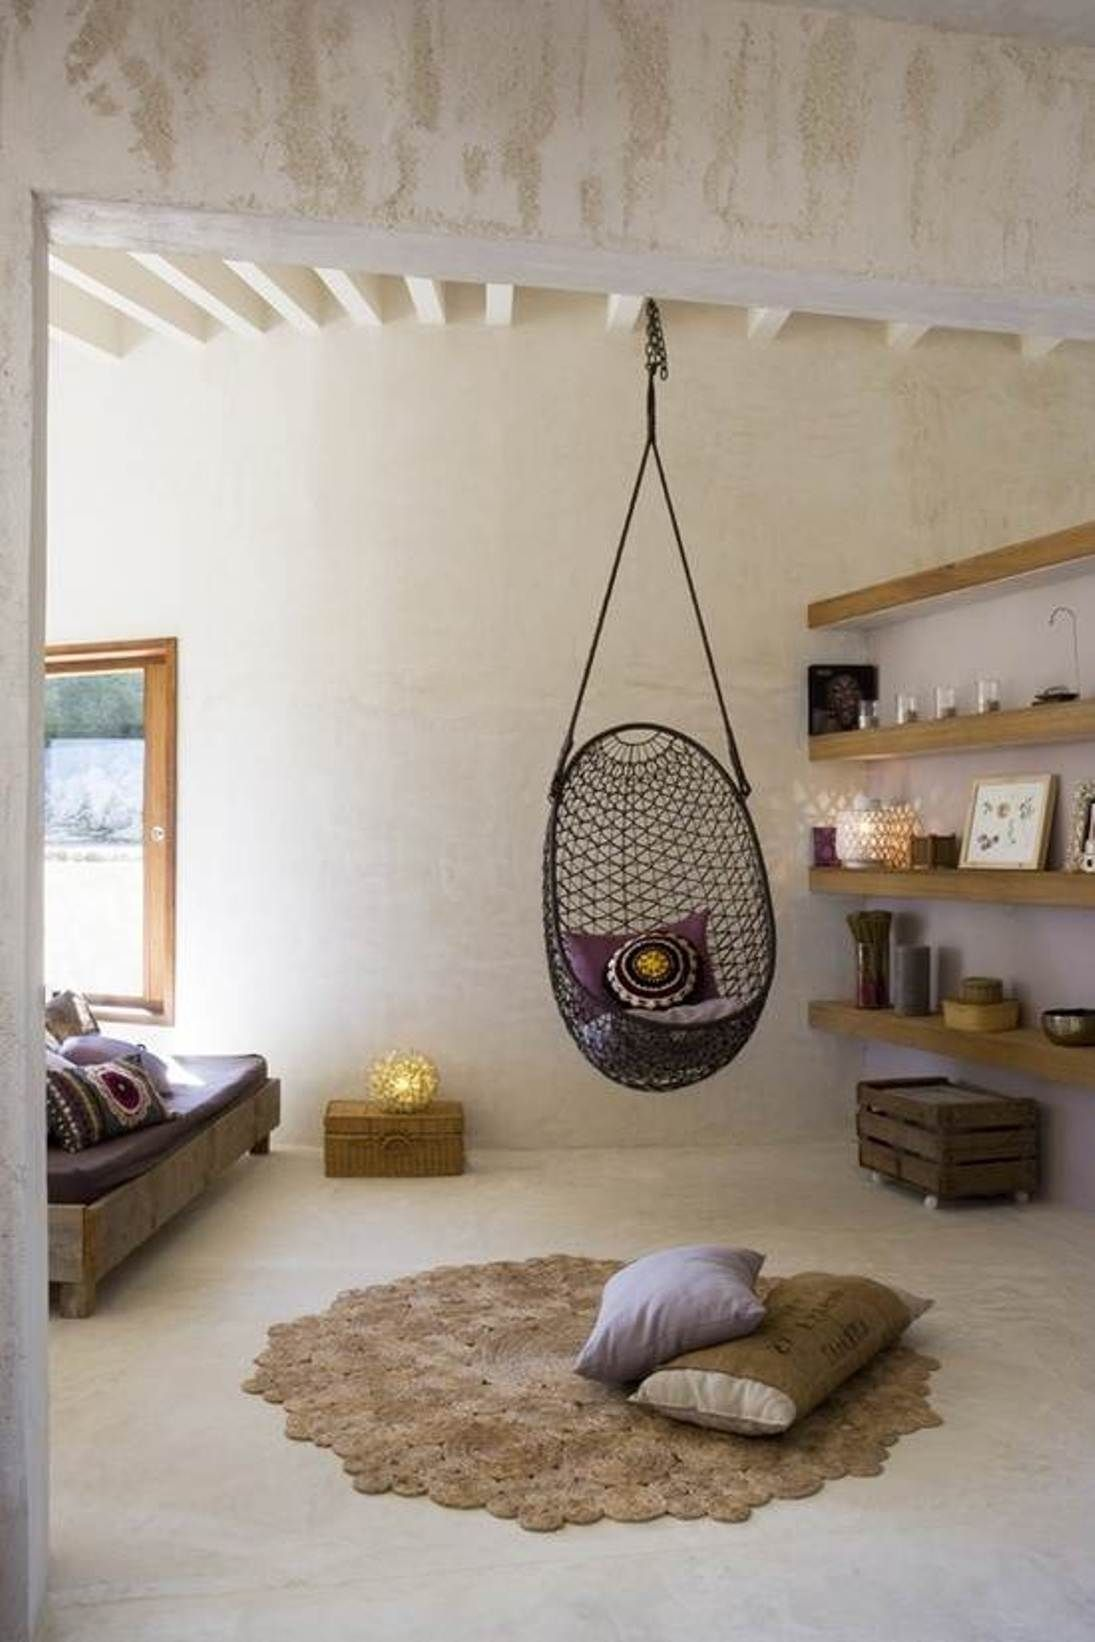 Captivating grid rattan bedroom hanging chair design. #HangingChairs  #Netnoot #Furniture www.